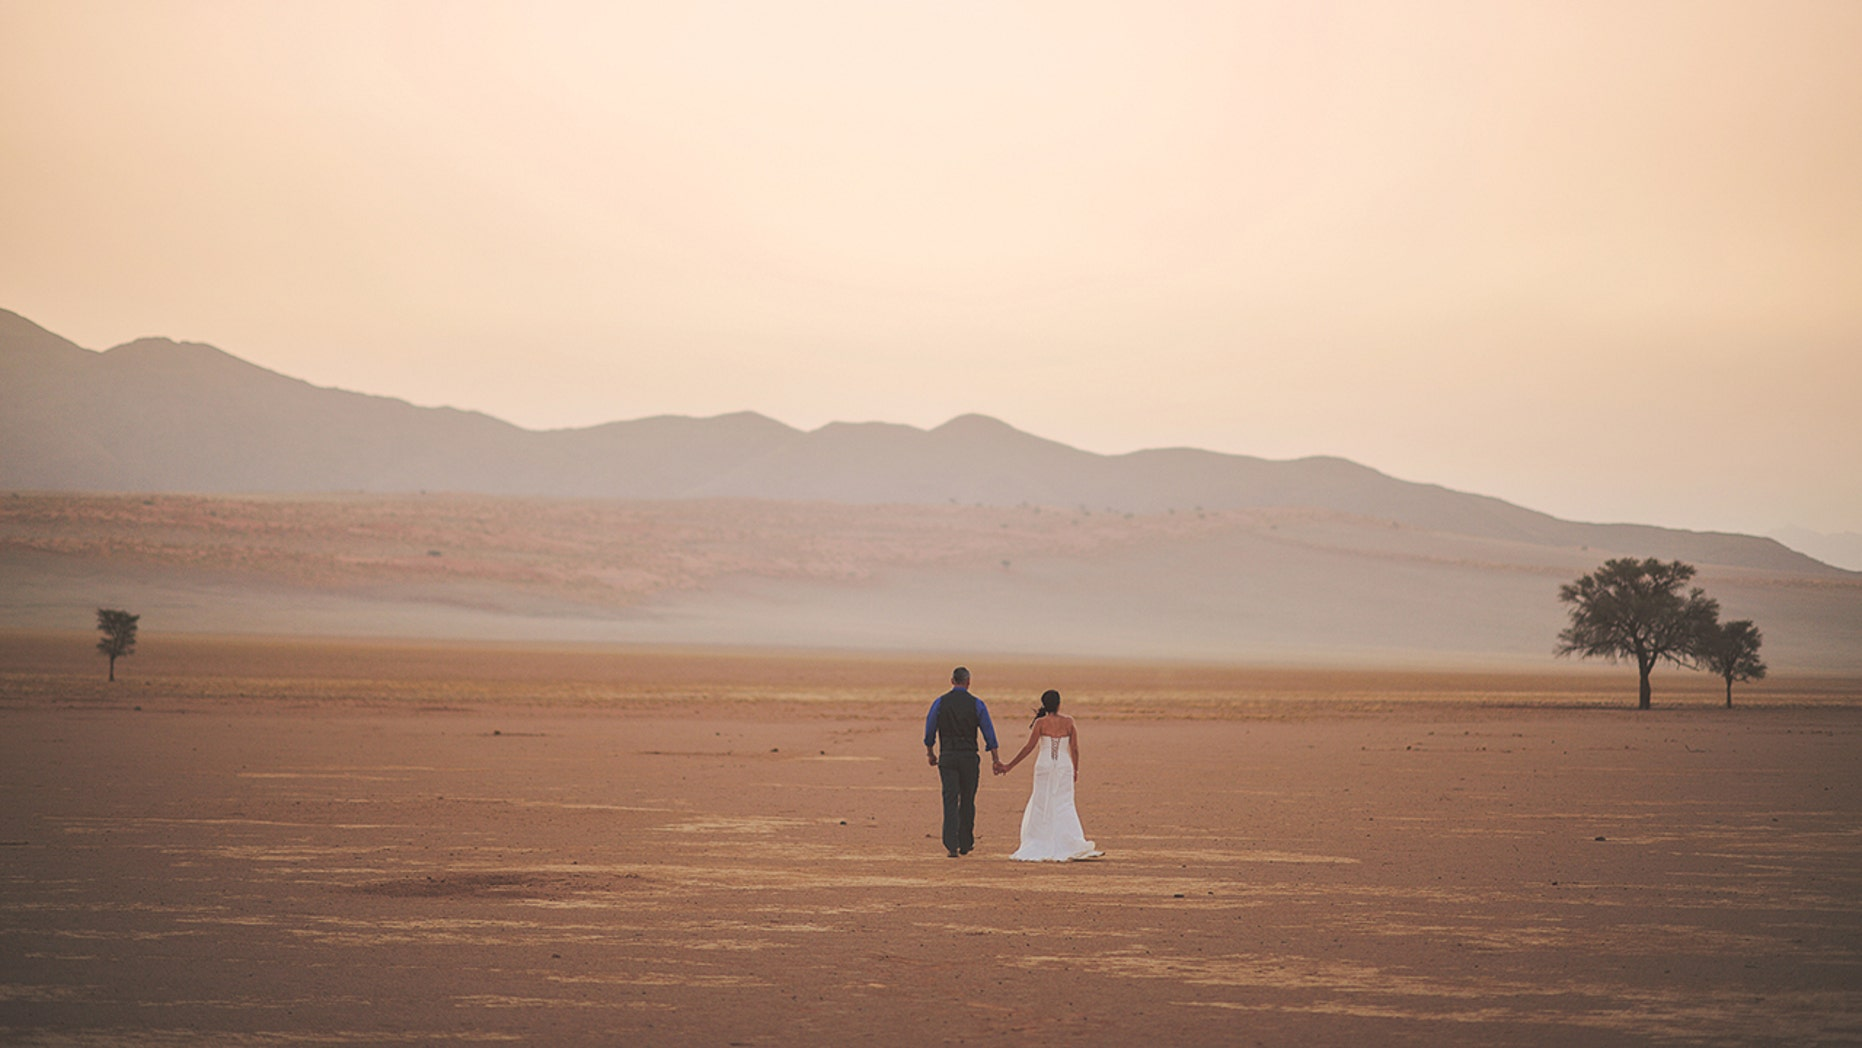 Getting married out West has its financial perks, according to a new study.